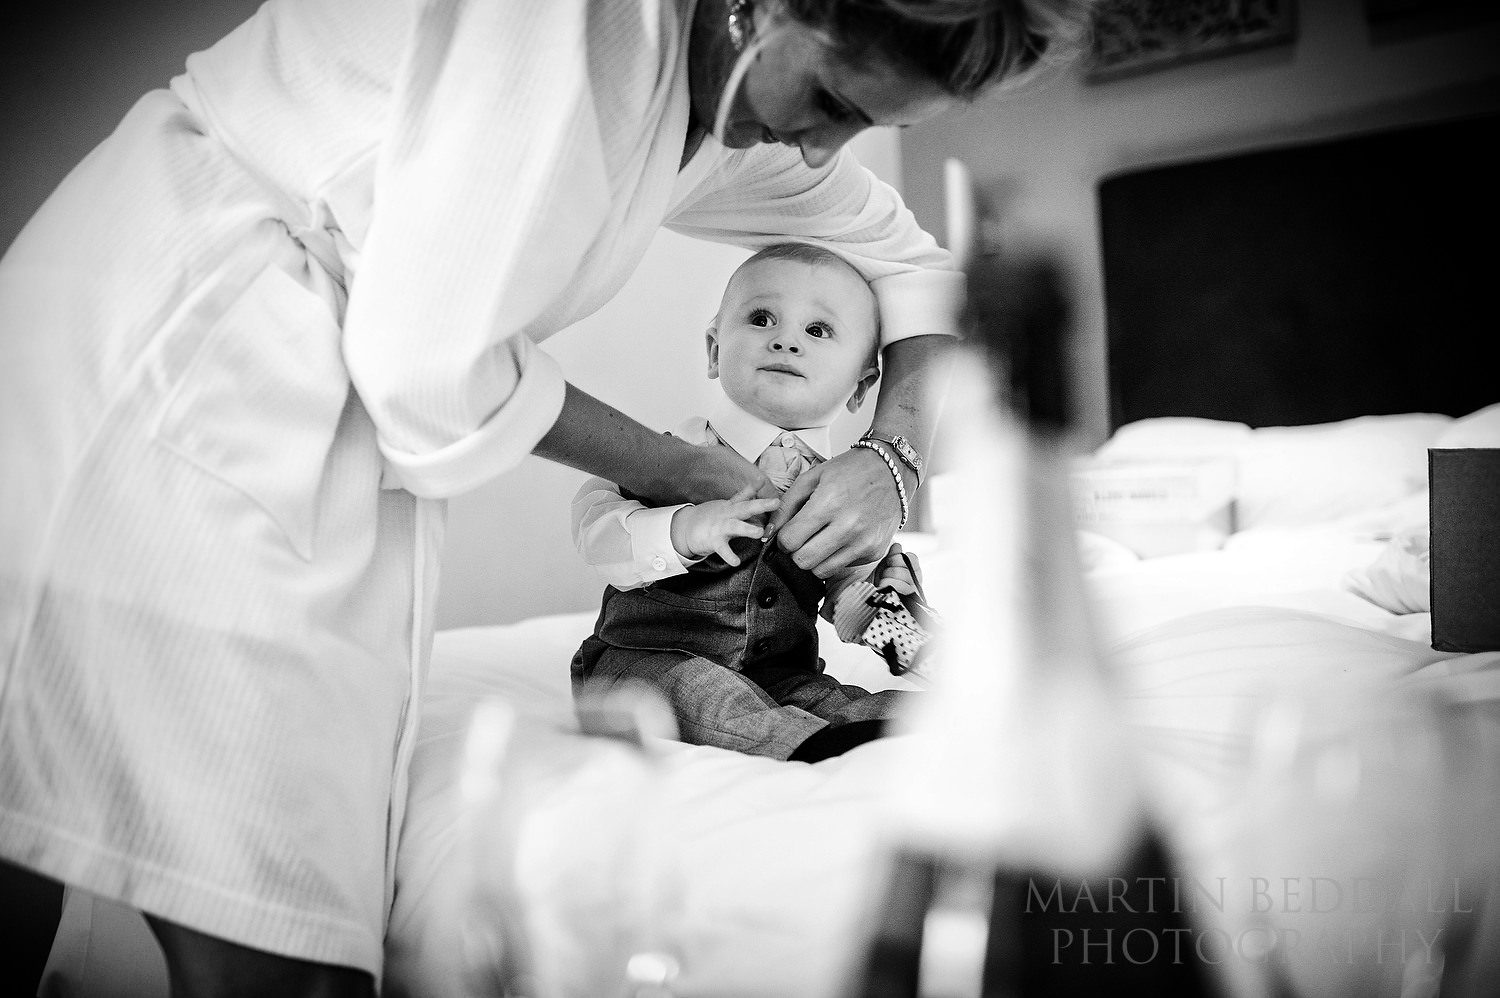 BRide dresses her son in his wedding outfit